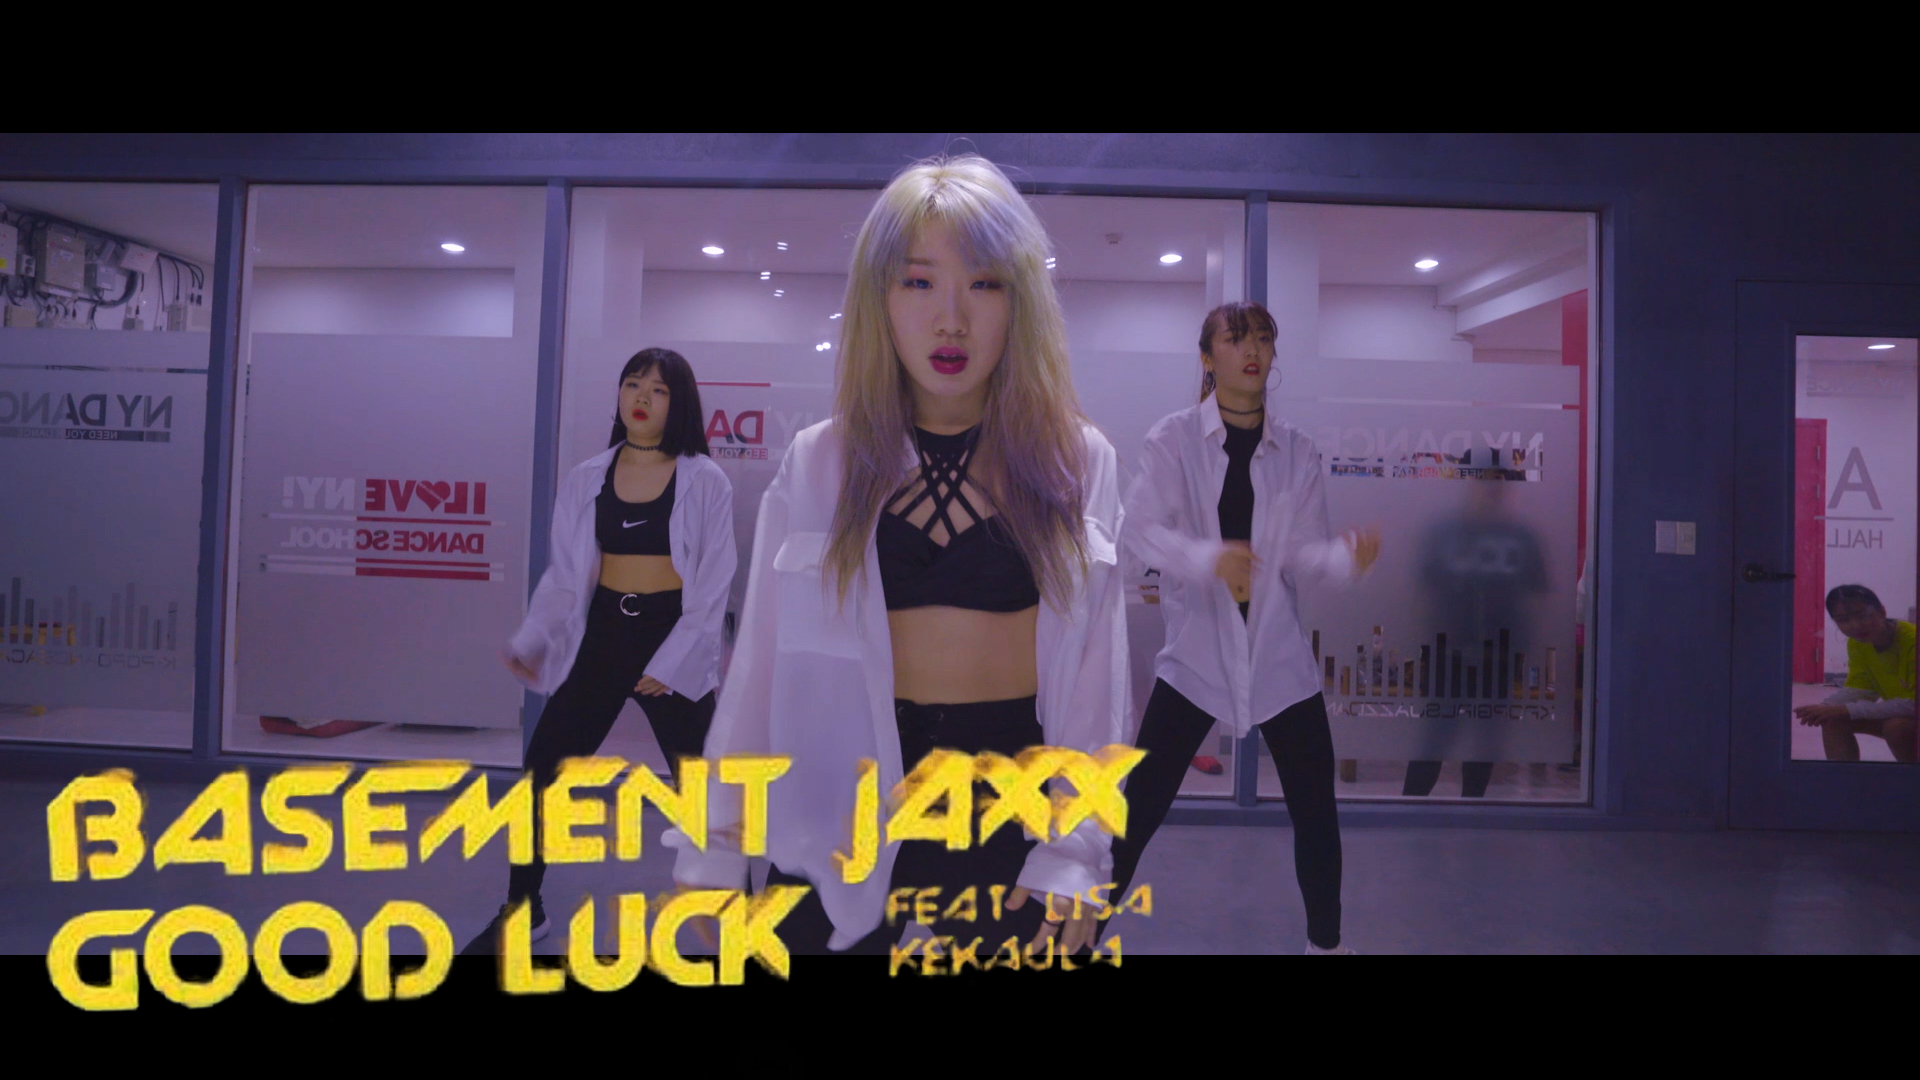 Basement Jaxx – Good Luck feat. Lisa Kekaula (choreography_whatdowwari)